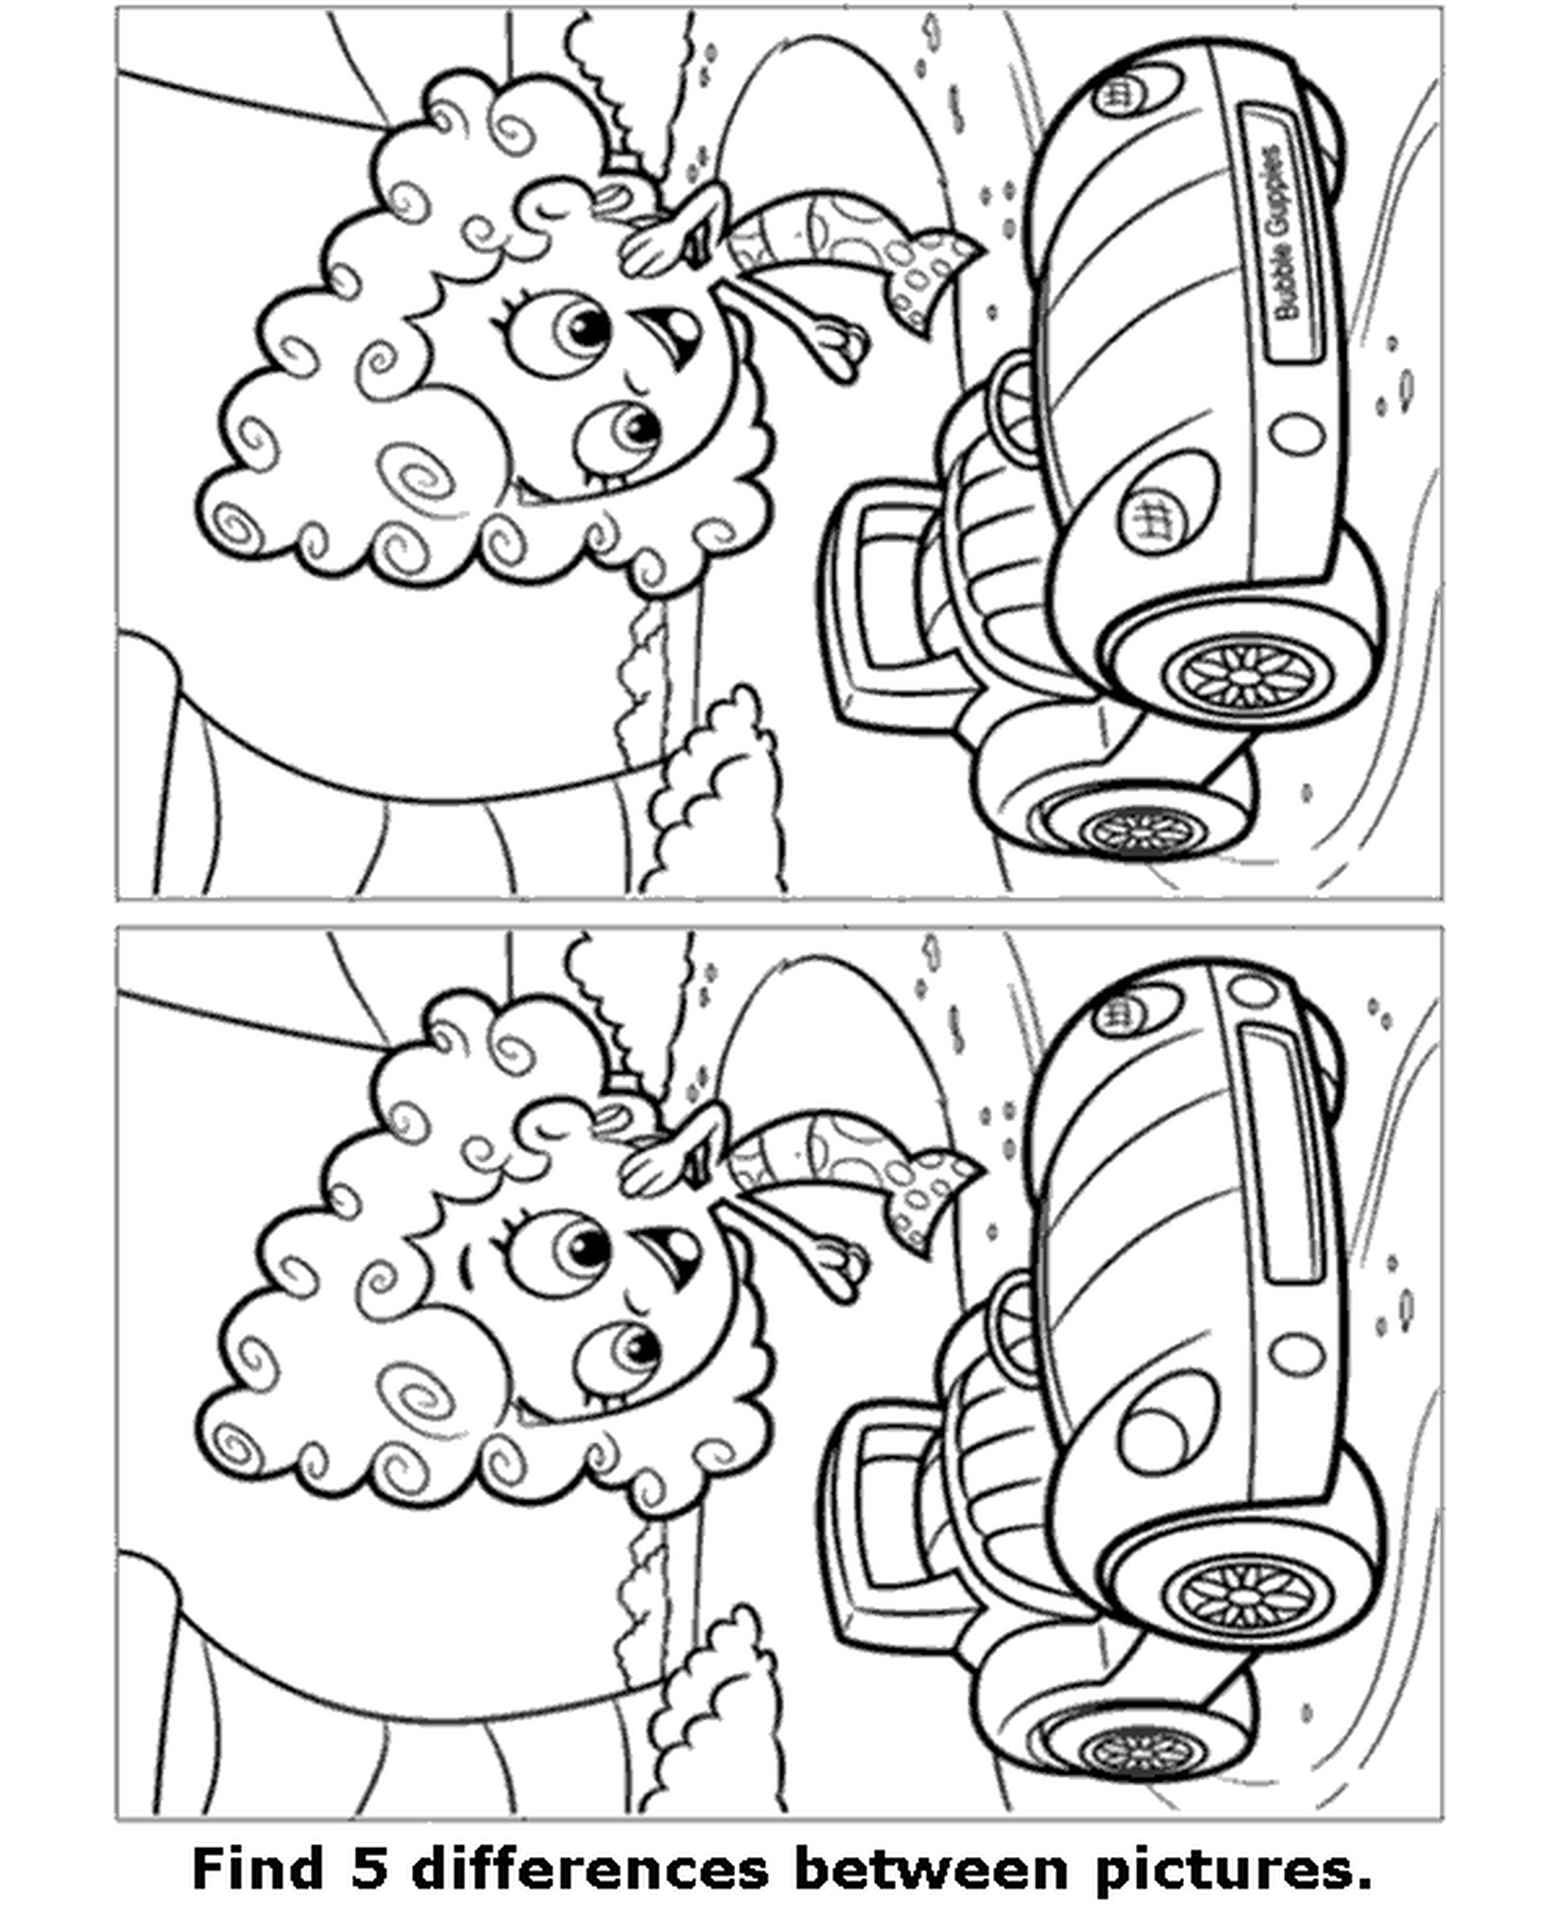 Spot 5 Differences Picture With Mermaid Coloring Page